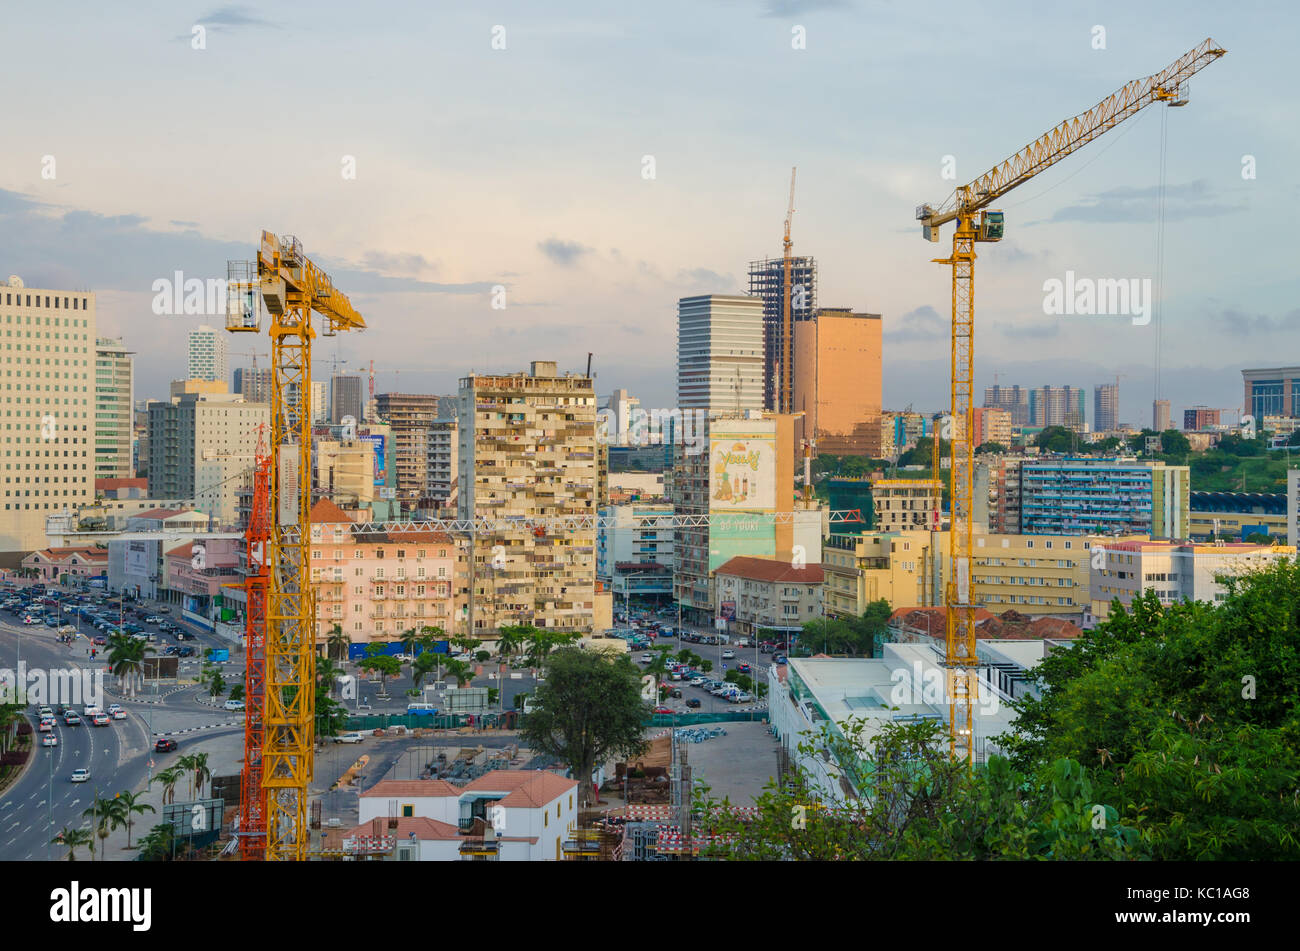 View over the skyline of Luanda with constructions cranes, modern buildings and highway, Angola, Southern Africa - Stock Image